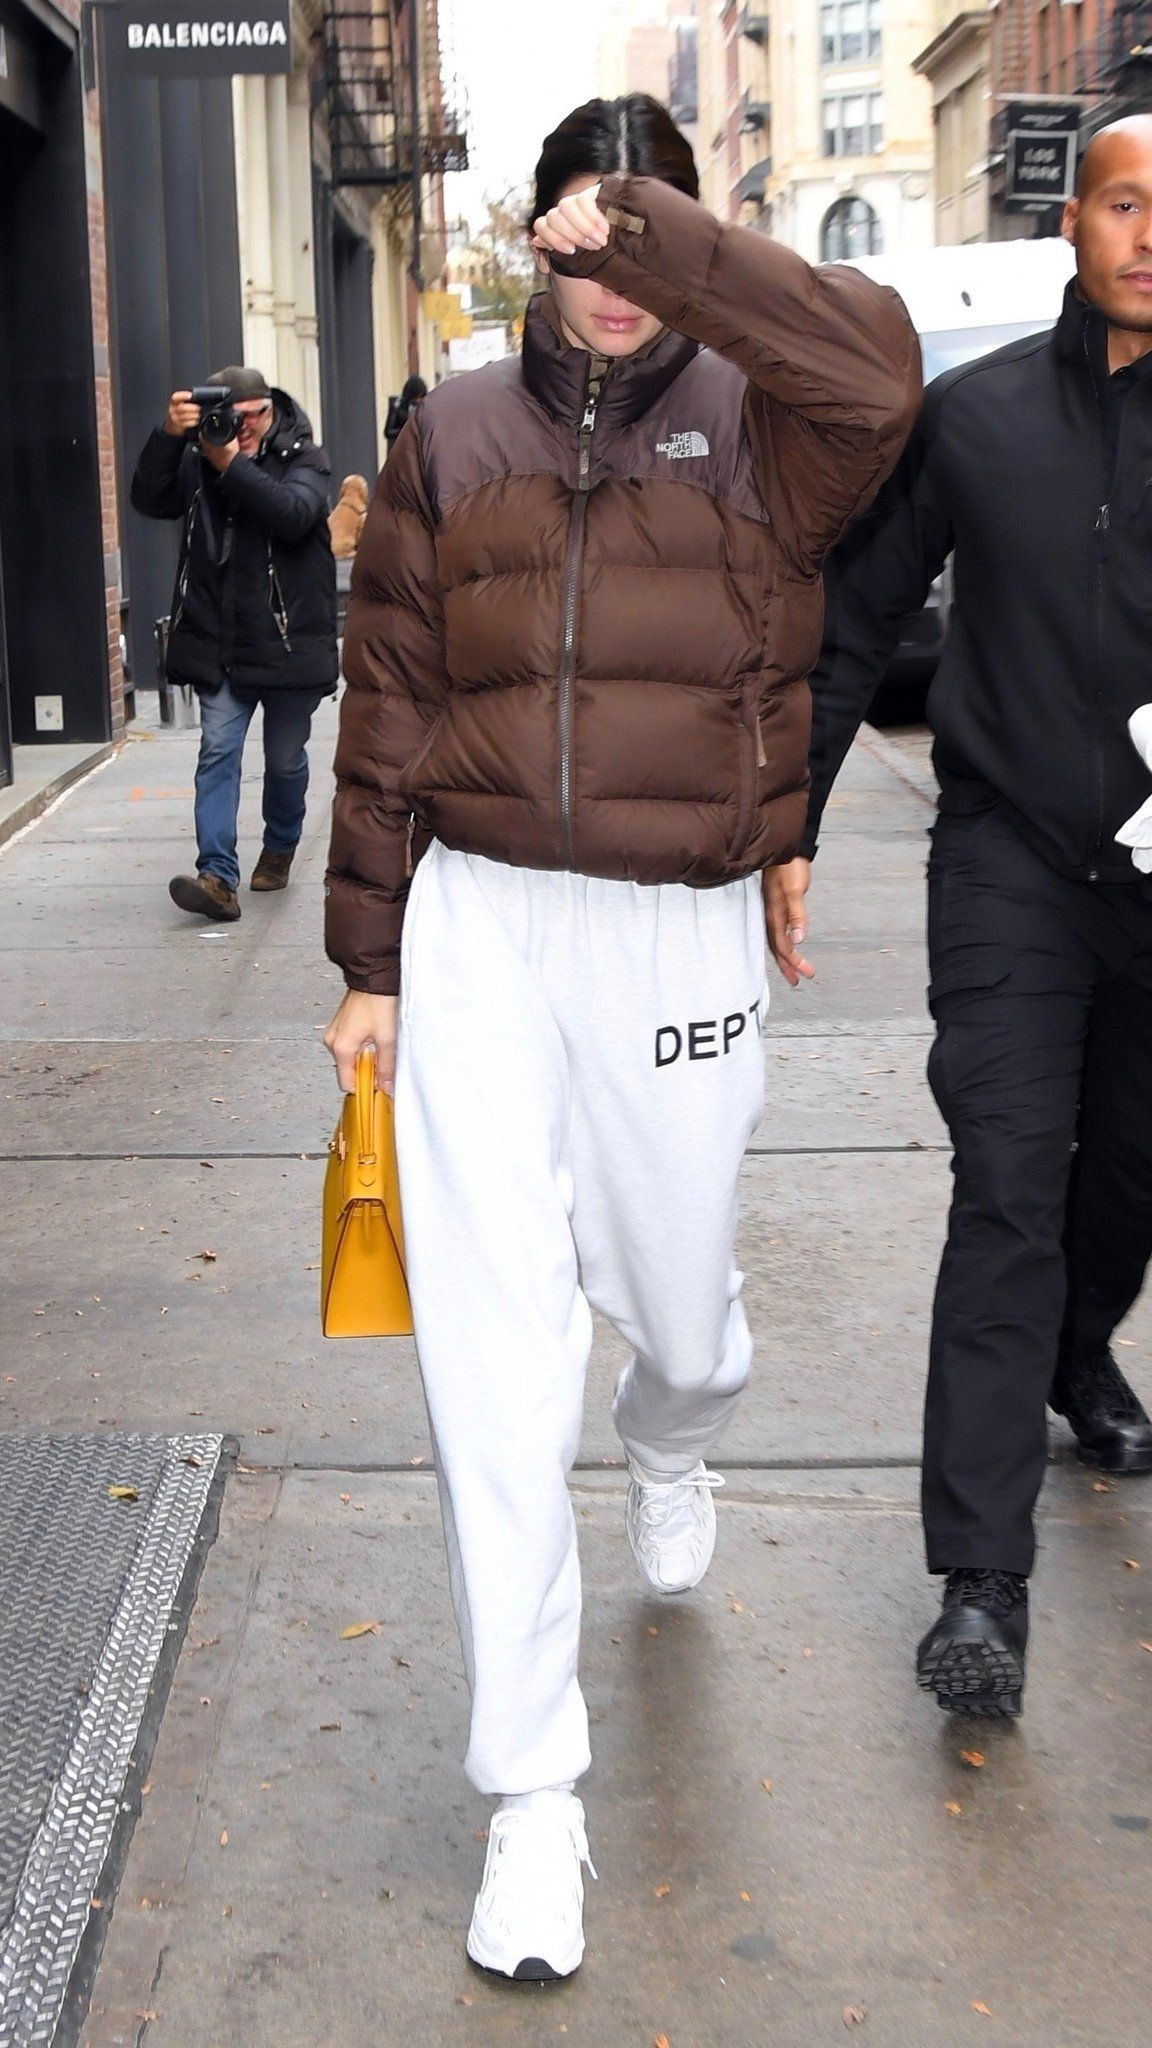 Kendall Jenner North Face Jacket Outfit North Face Puffer Jacket Brown North Face Jacket [ 2048 x 1152 Pixel ]